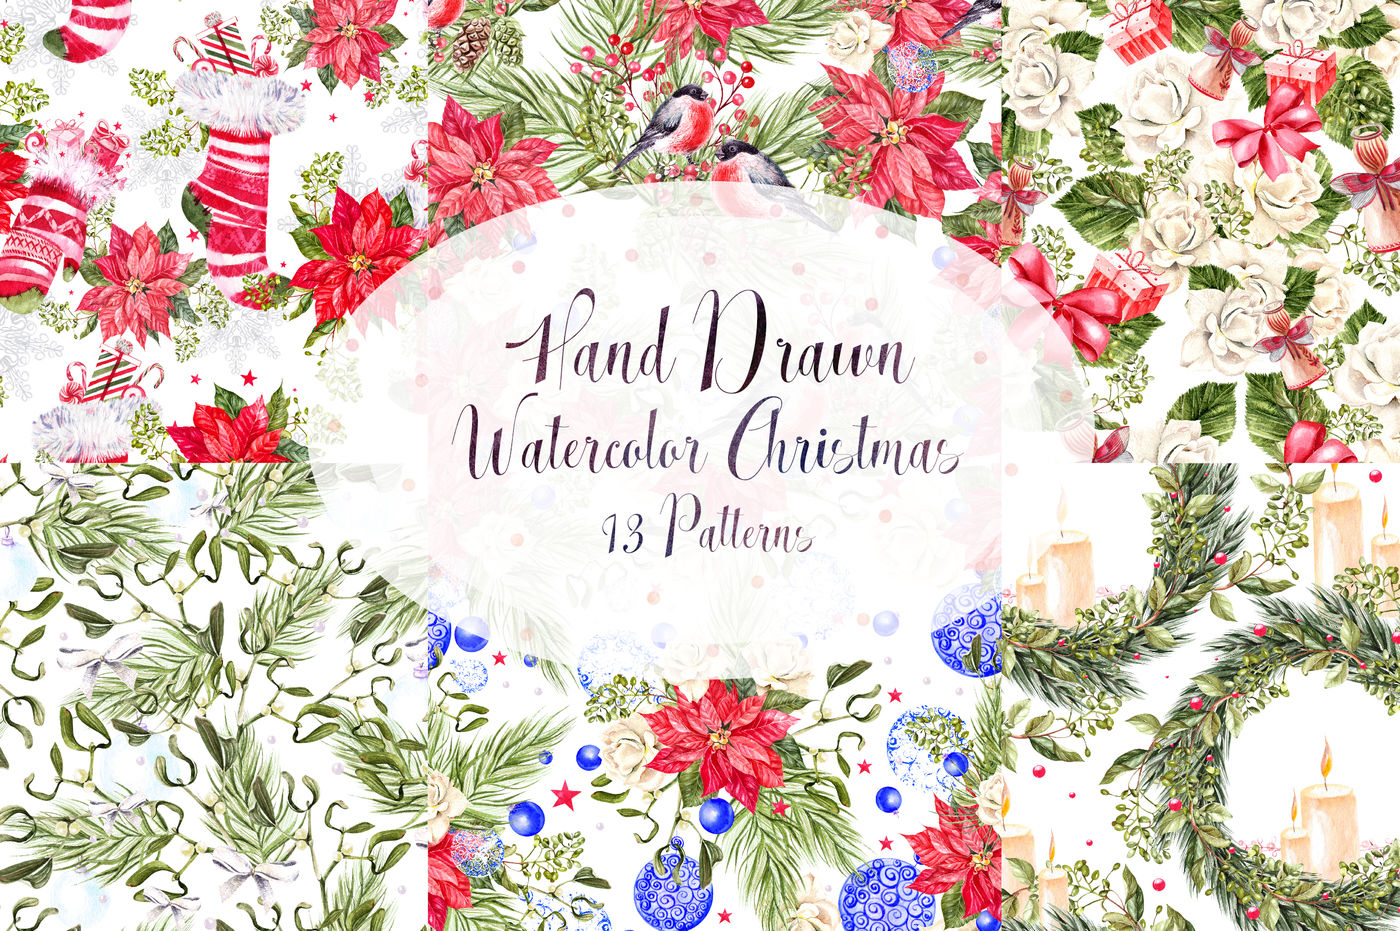 Hand Drawn Watercolor Christmas 13 Patterns By Knopazyzy Shop